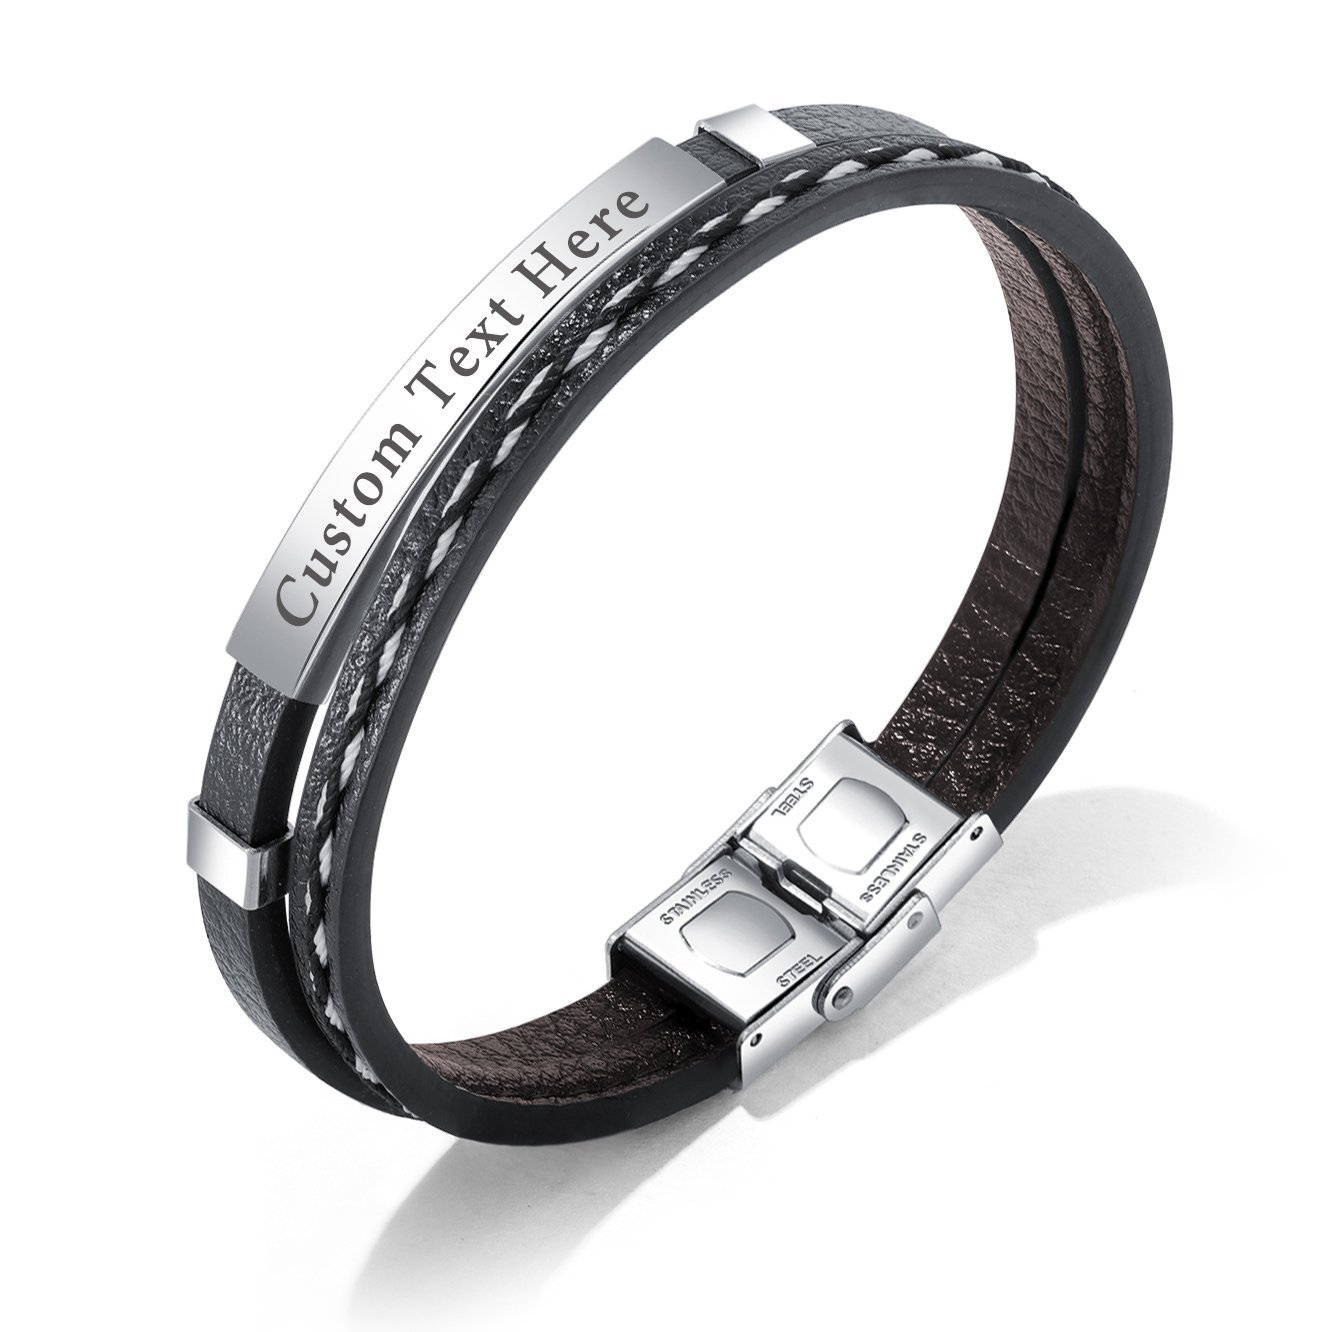 GAGAFEEL Leather Bracelet Braided Rope Cuff Custom Engraved Message Stainless Steel Bangle Unisex Gift (Engraving-Steel) by GAGAFEEL (Image #1)